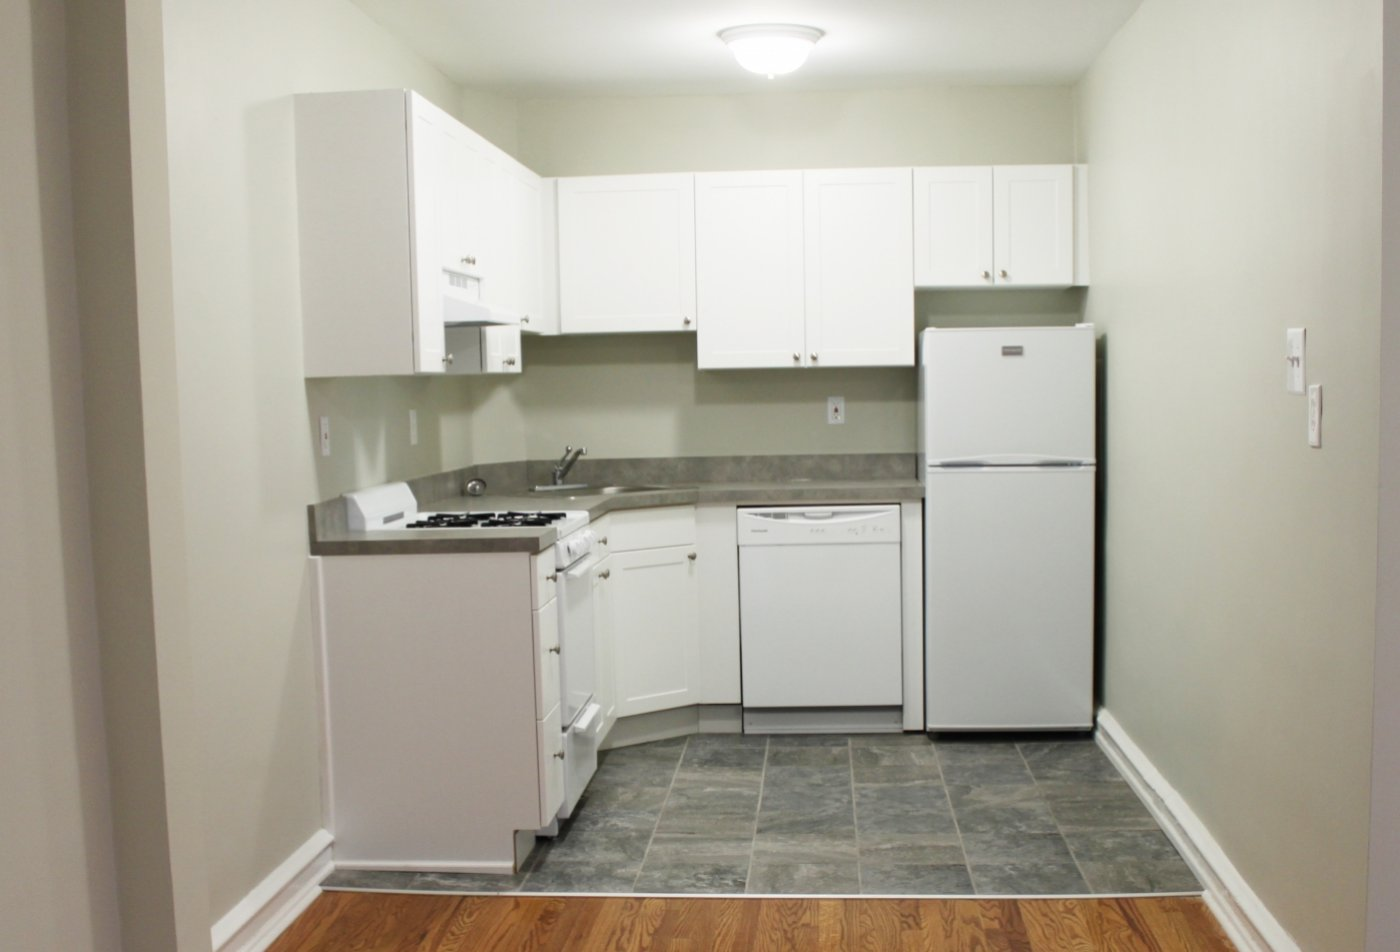 Modern Kitchen | Ardmore PA Apartment For Rent | Suburban Court Apartments